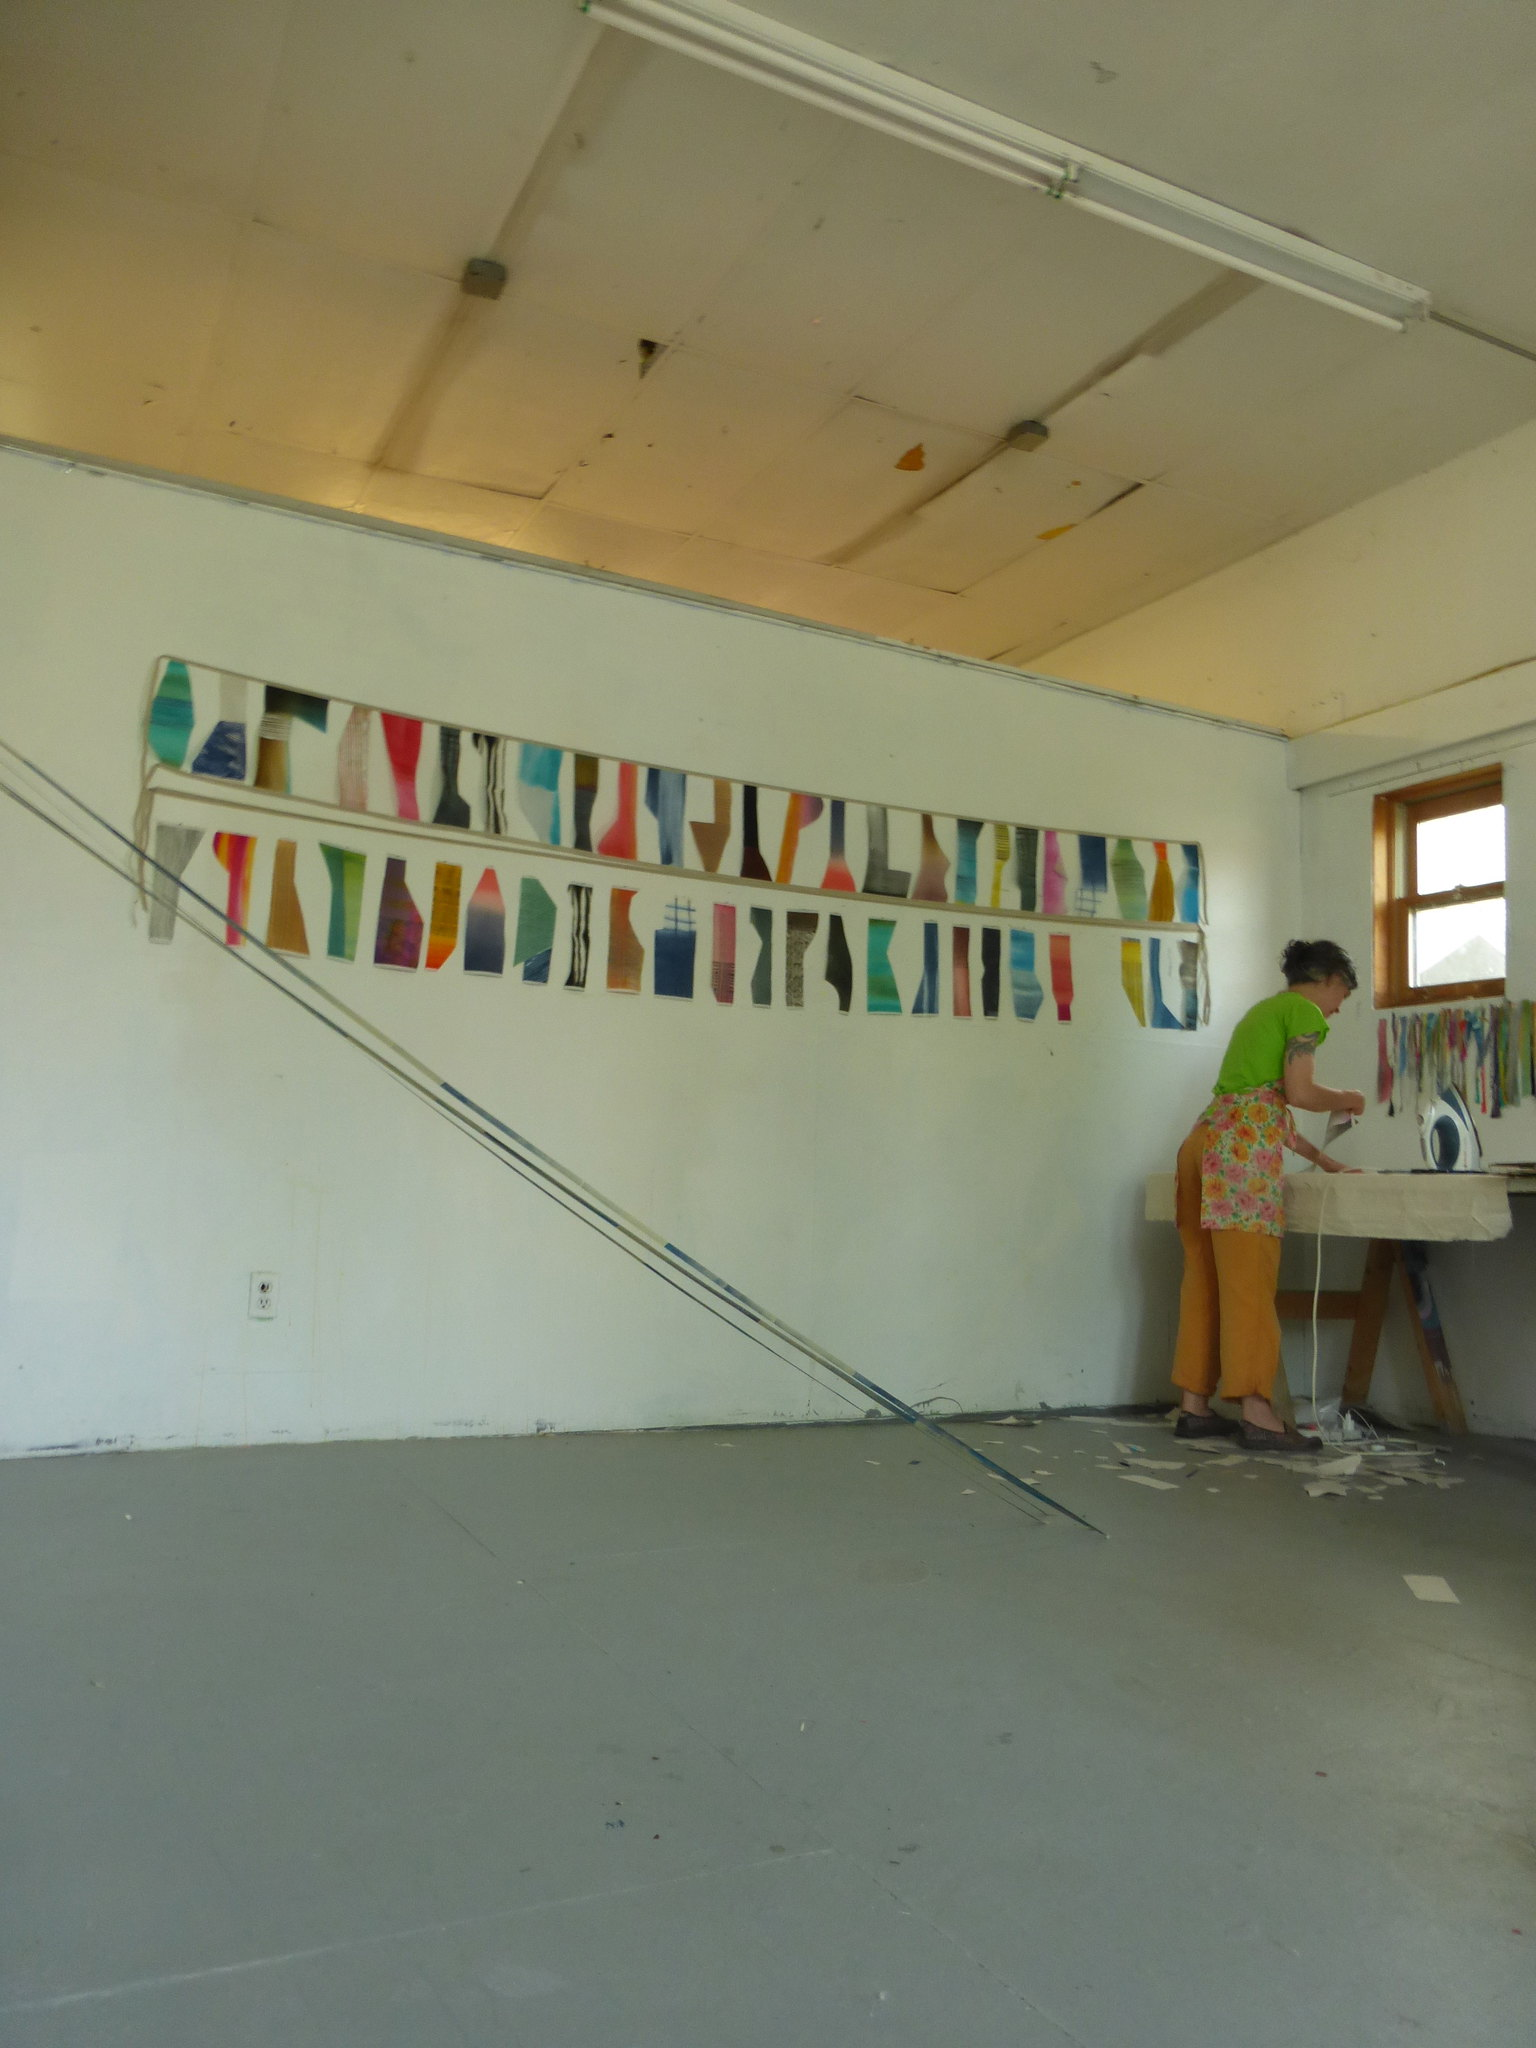 Katy Fischer [visual artist] — studio visit, Vermont Studio Center, July 2014